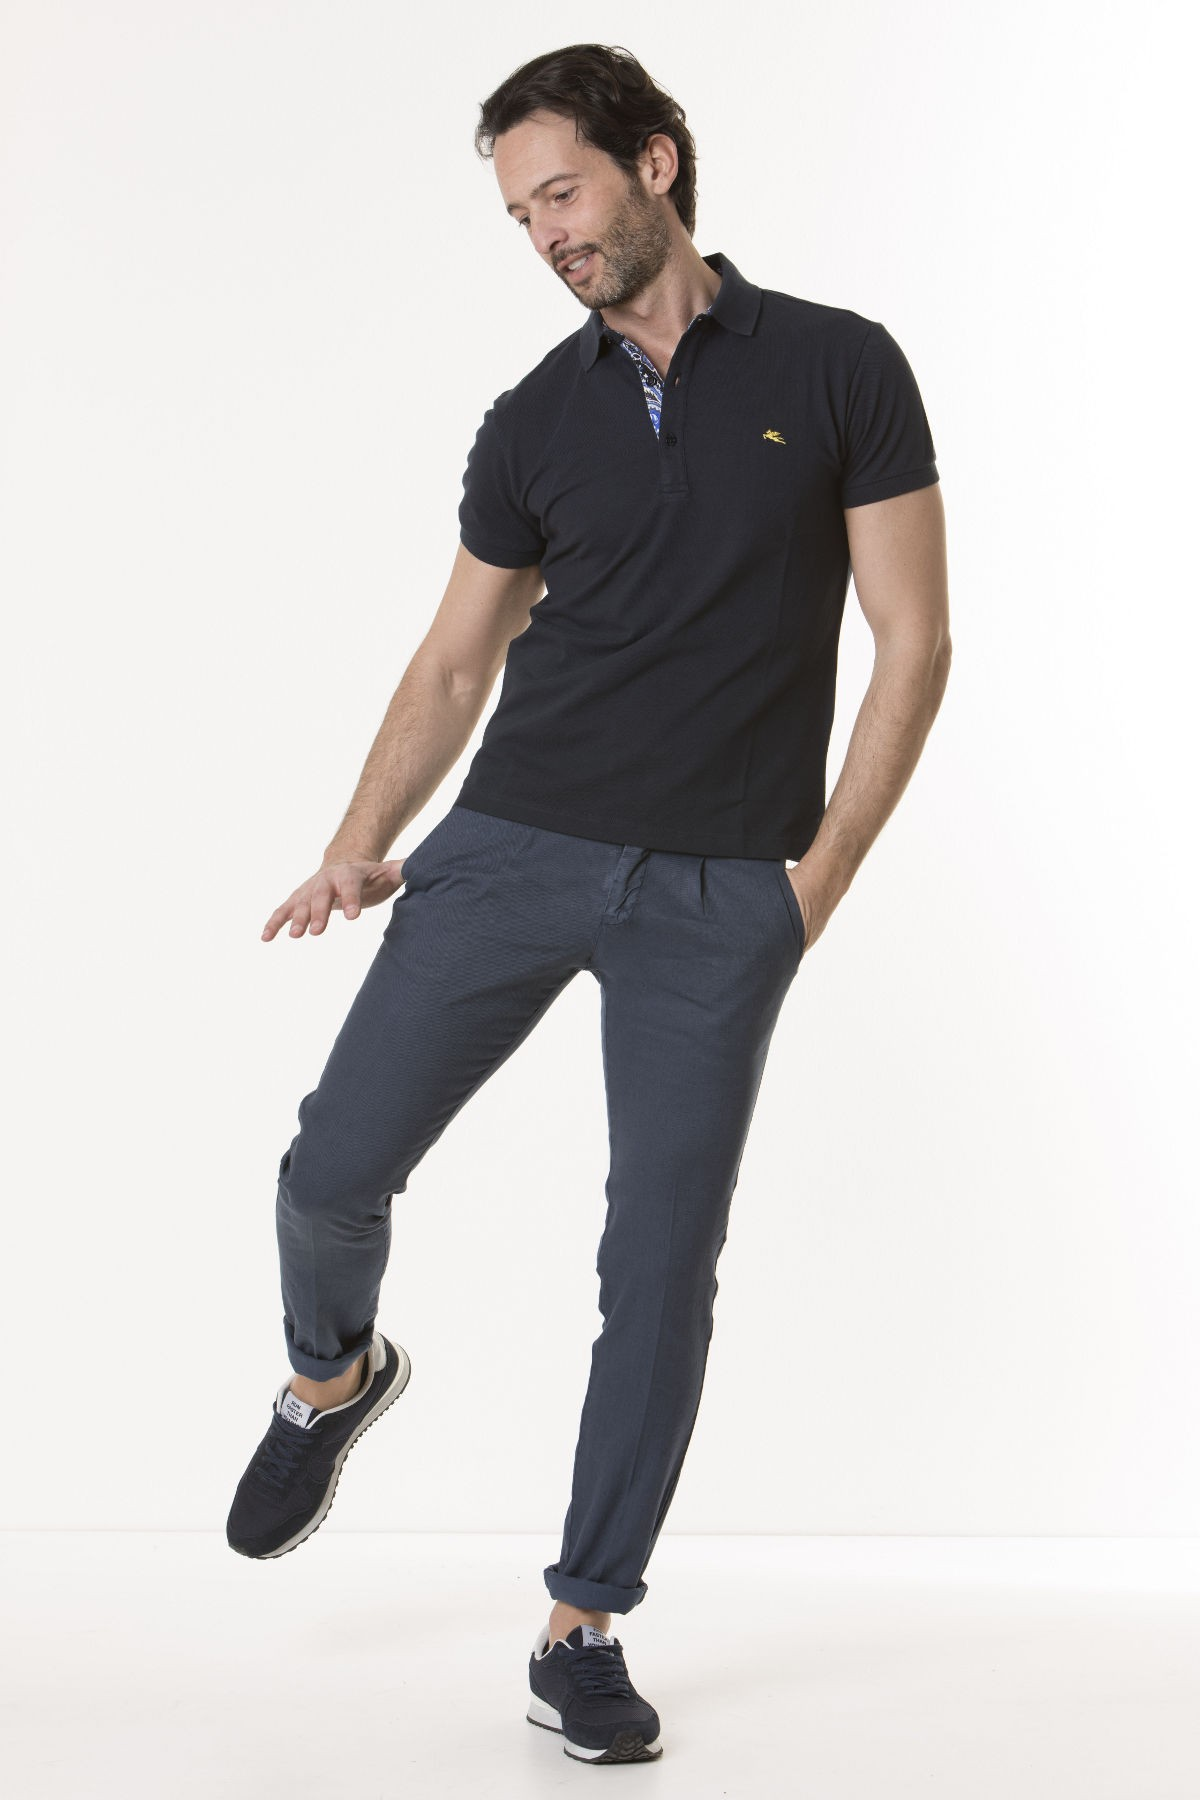 ac119ebe Polo for man ETRO S/S 18 - Rione Fontana